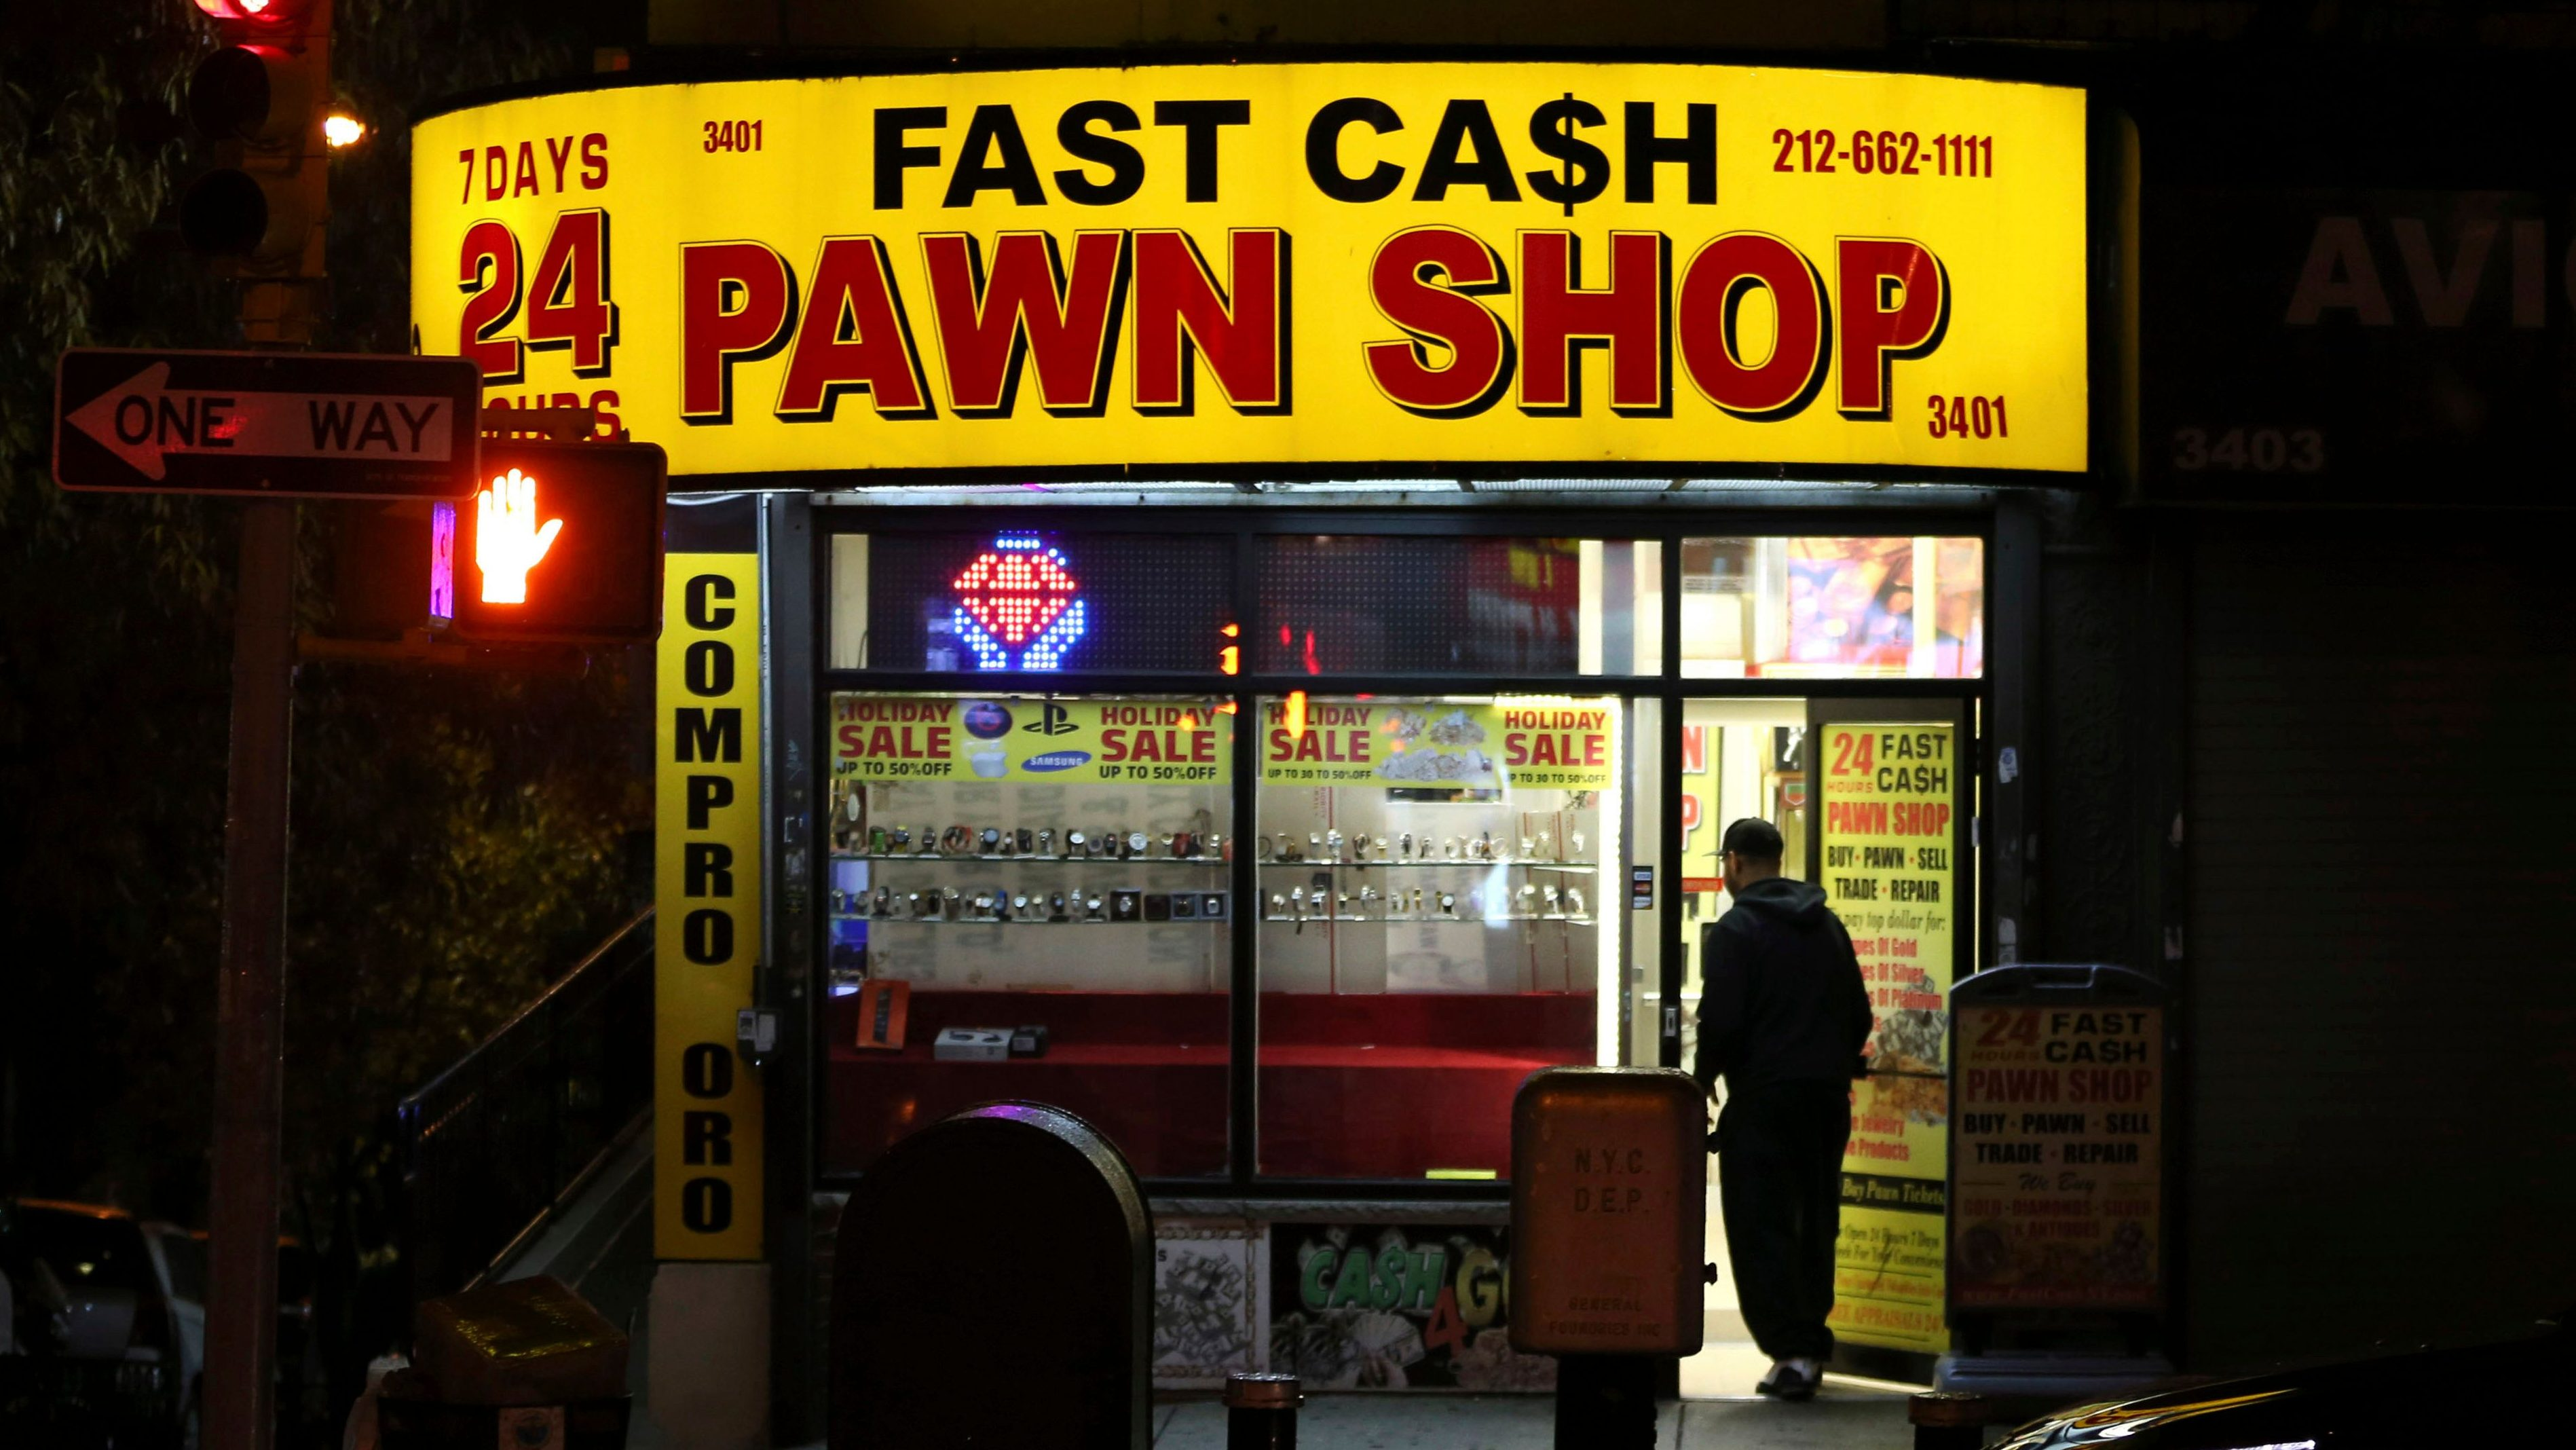 Quick Payday Loans >> Ohio's ban on payday loans sent people running to pawn ...